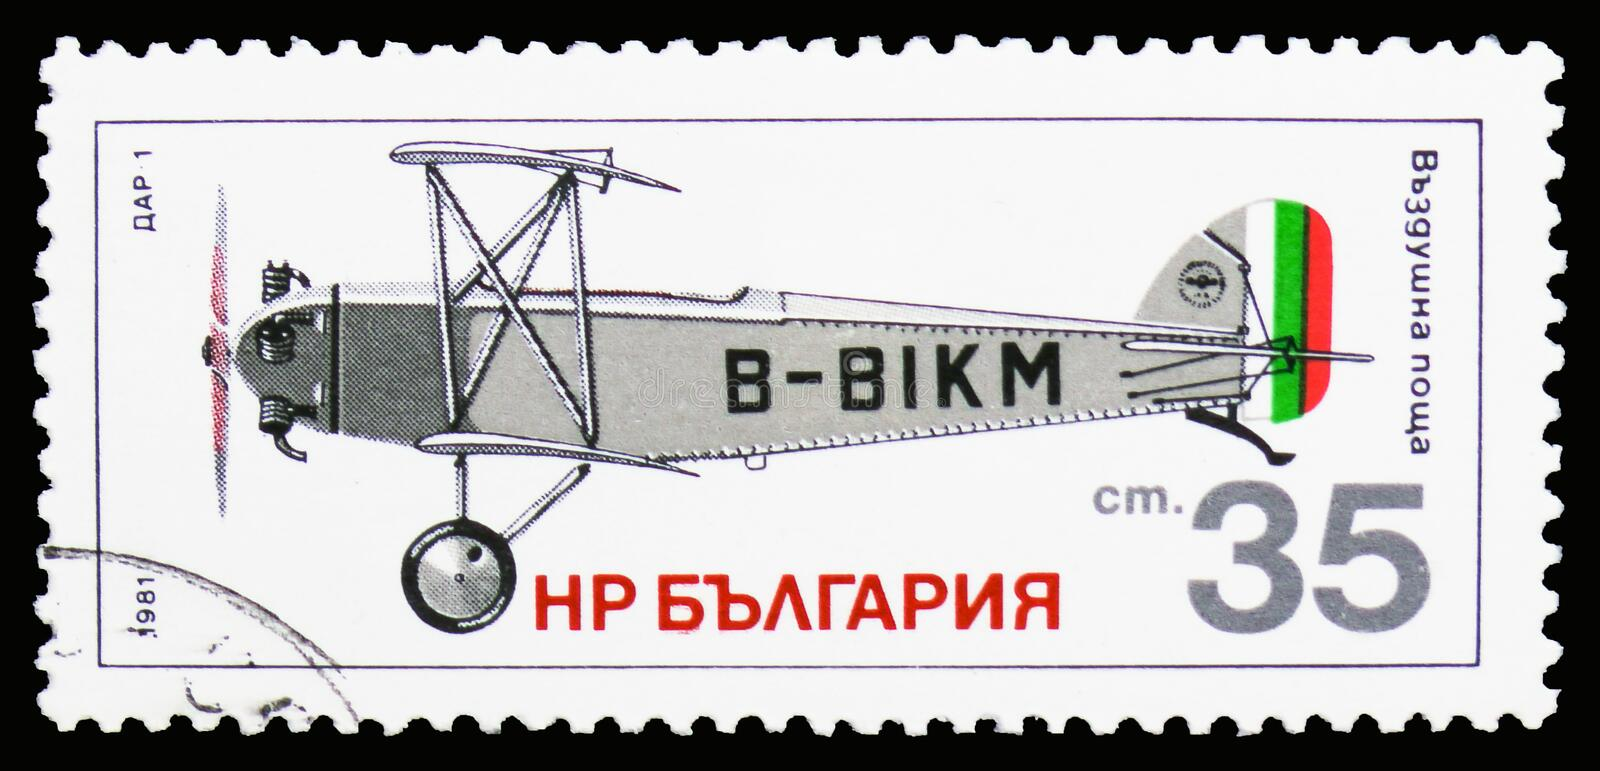 Airplane DAR-1, History of aircraft serie, circa 1981. MOSCOW, RUSSIA - OCTOBER 6, 2018: A stamp printed in Bulgaria shows Airplane DAR-1, History of aircraft royalty free stock photo